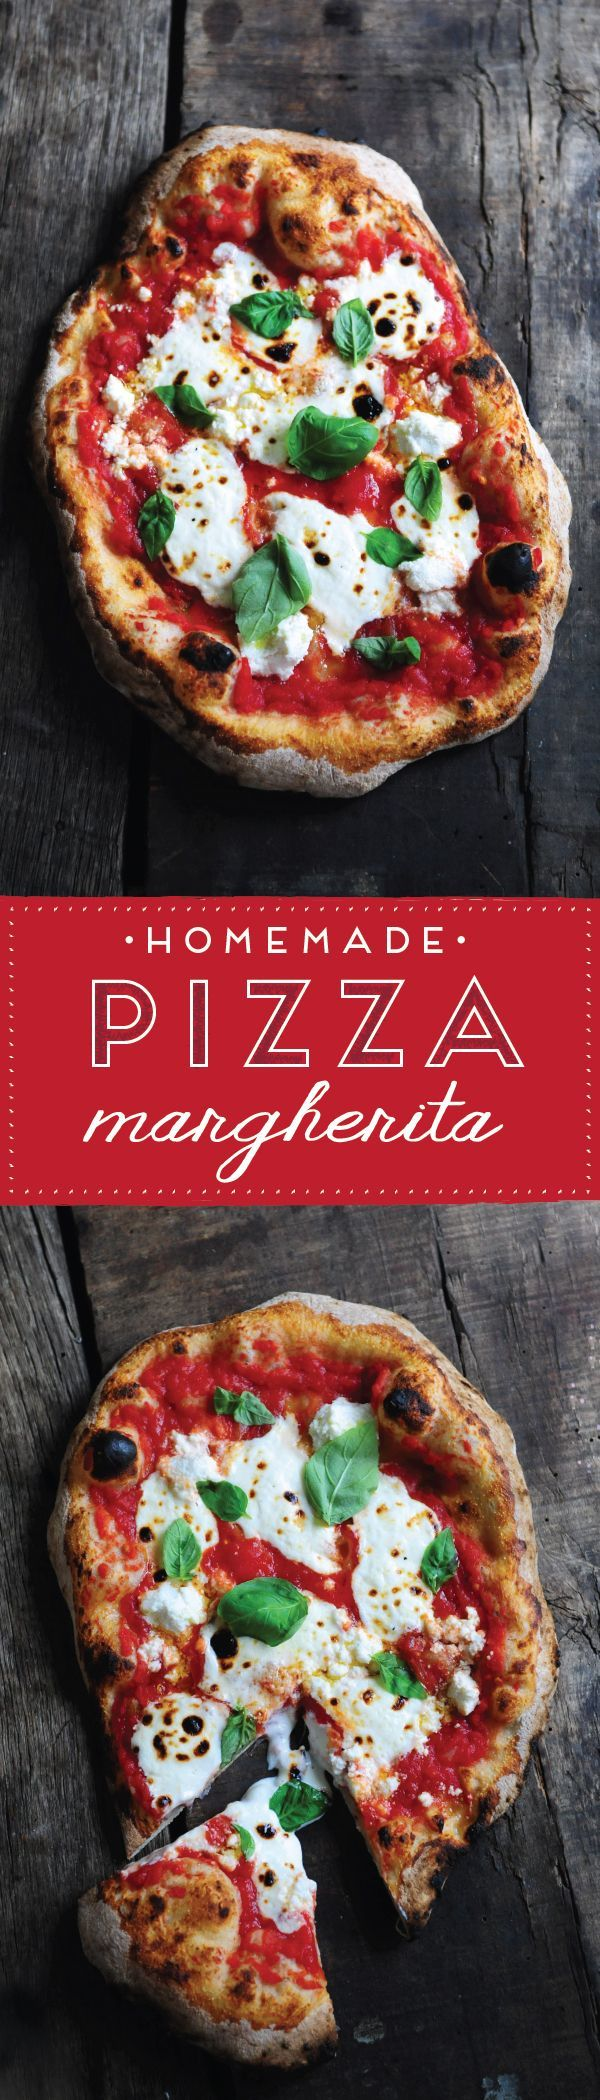 The classic pizza recipe from Naples, the Margherita Pizza. Using only fresh, simple ingredients (tomatoes, basil, fresh mozzarella) and a homemade dough recipe, this is one meal your family won't soon forget.